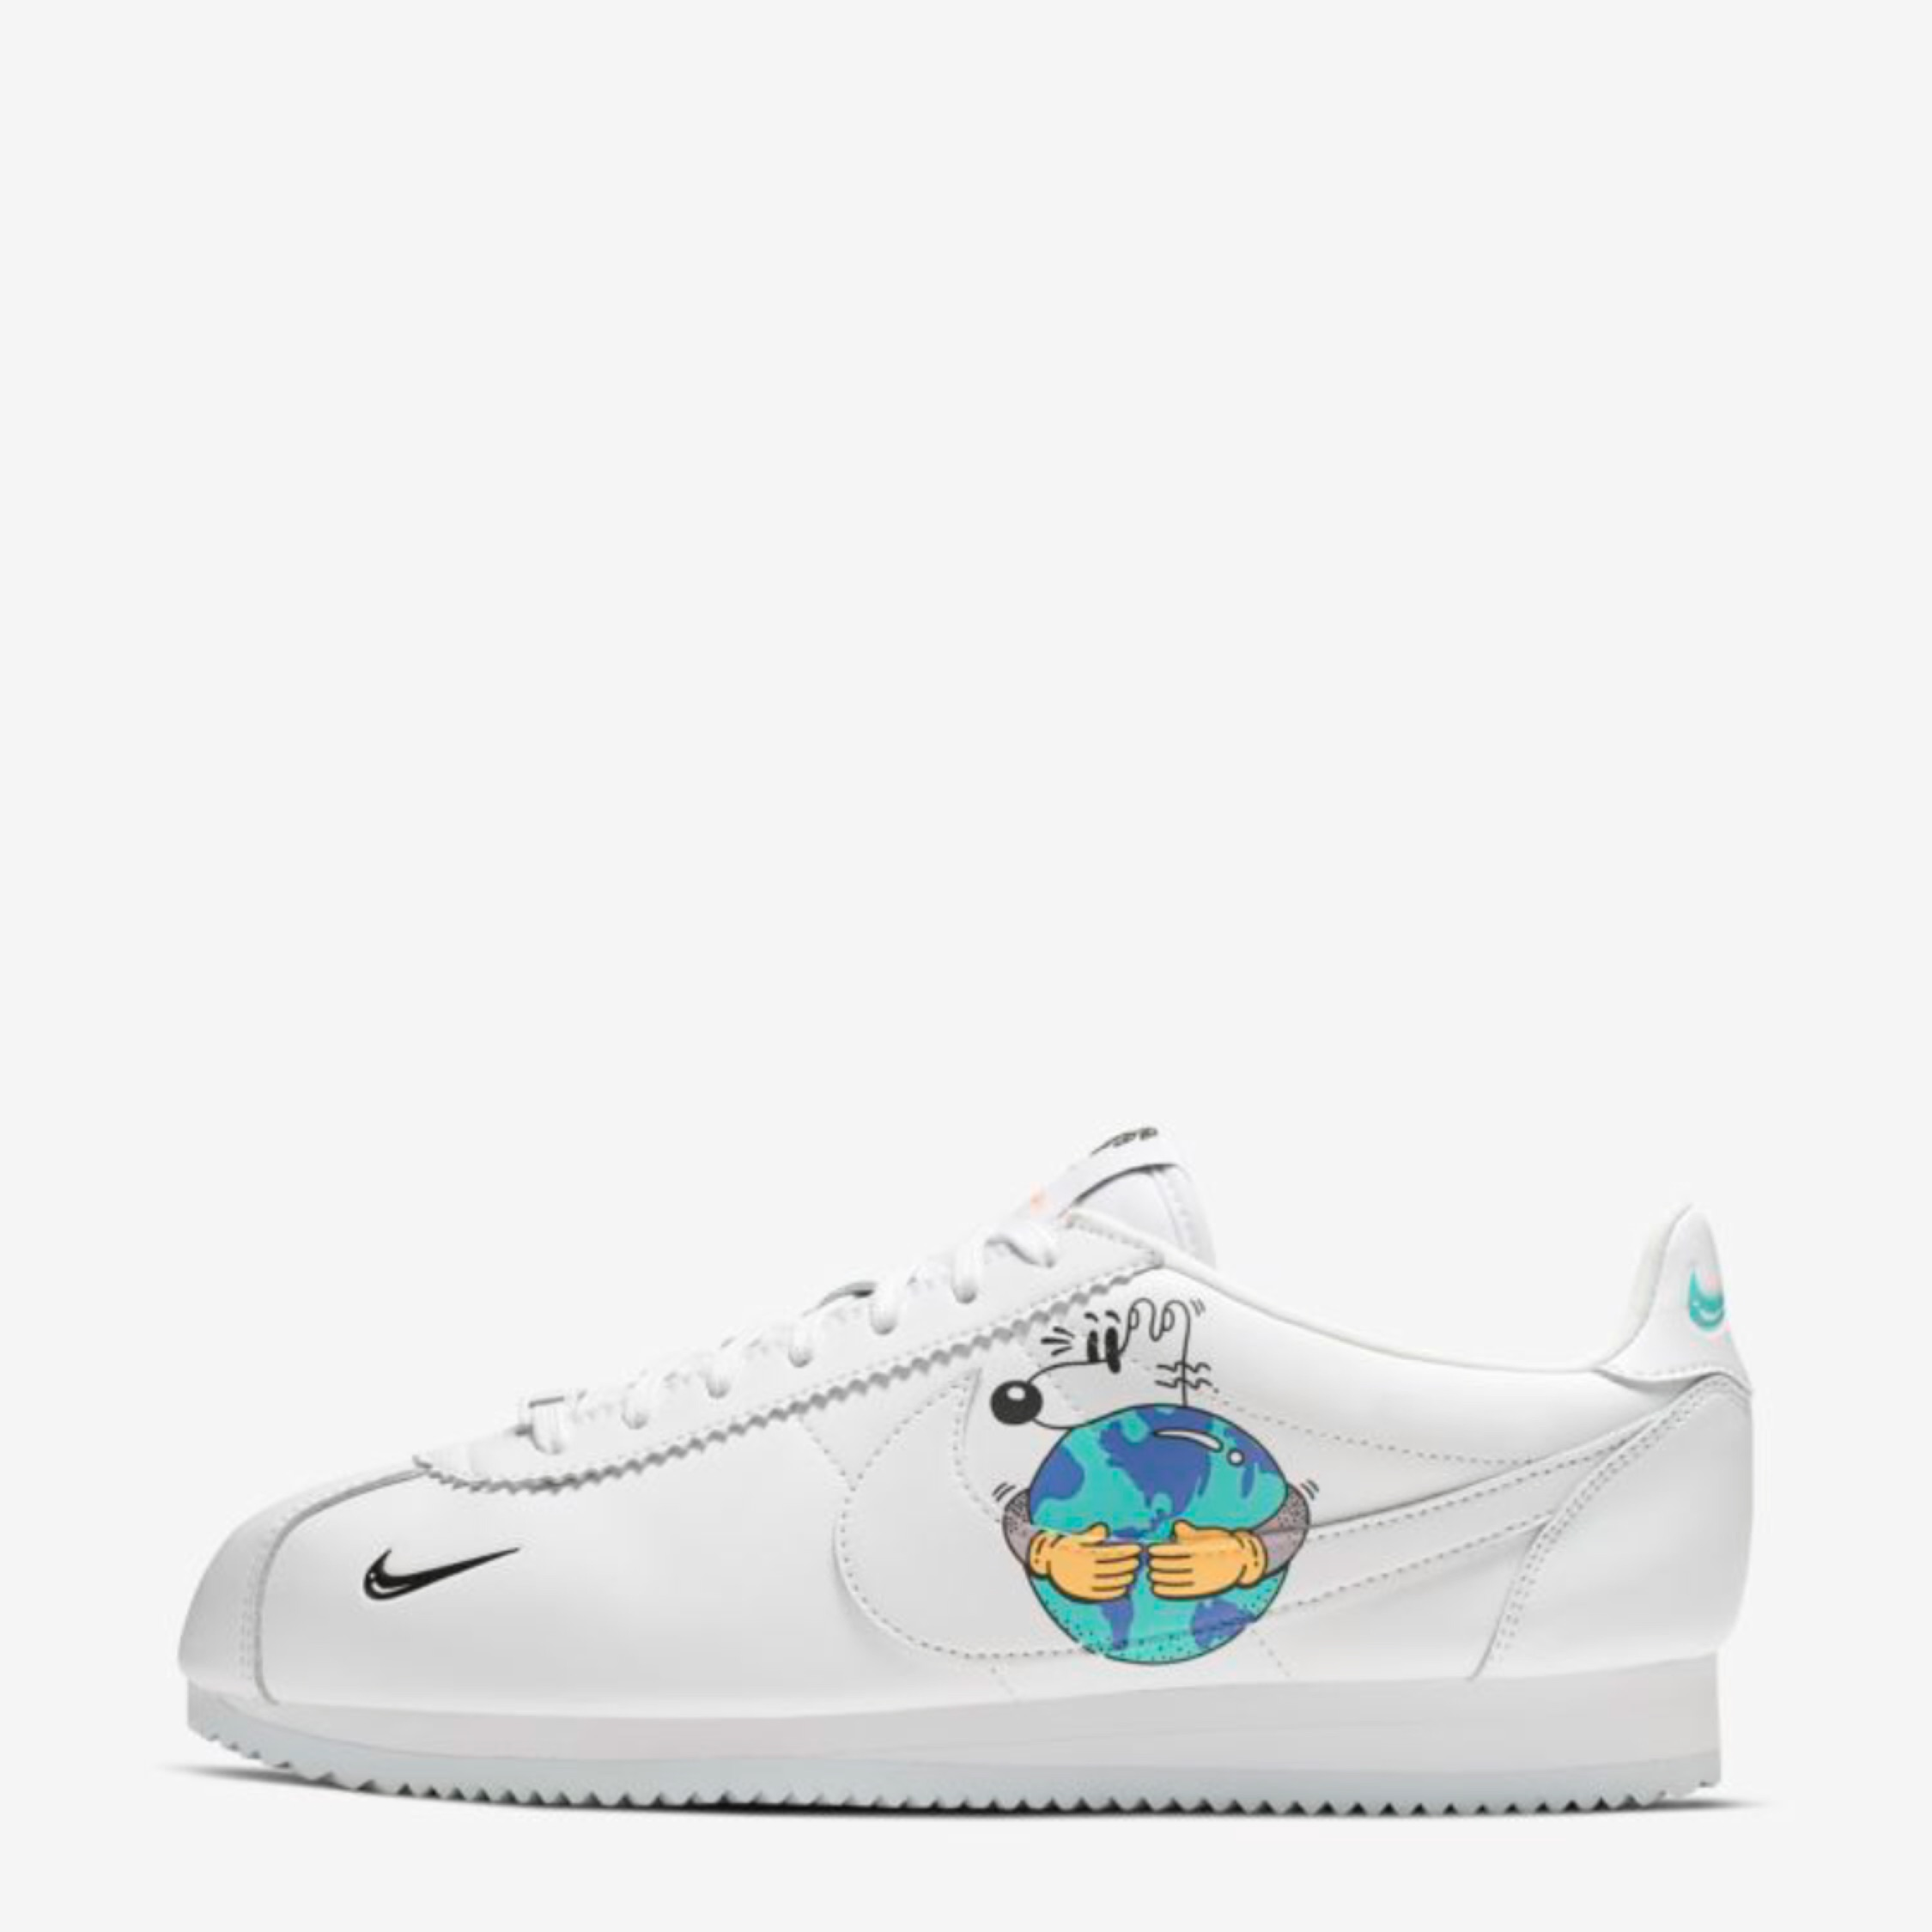 newest 2f0a8 b366a Nike Cortez Earth Day Collection